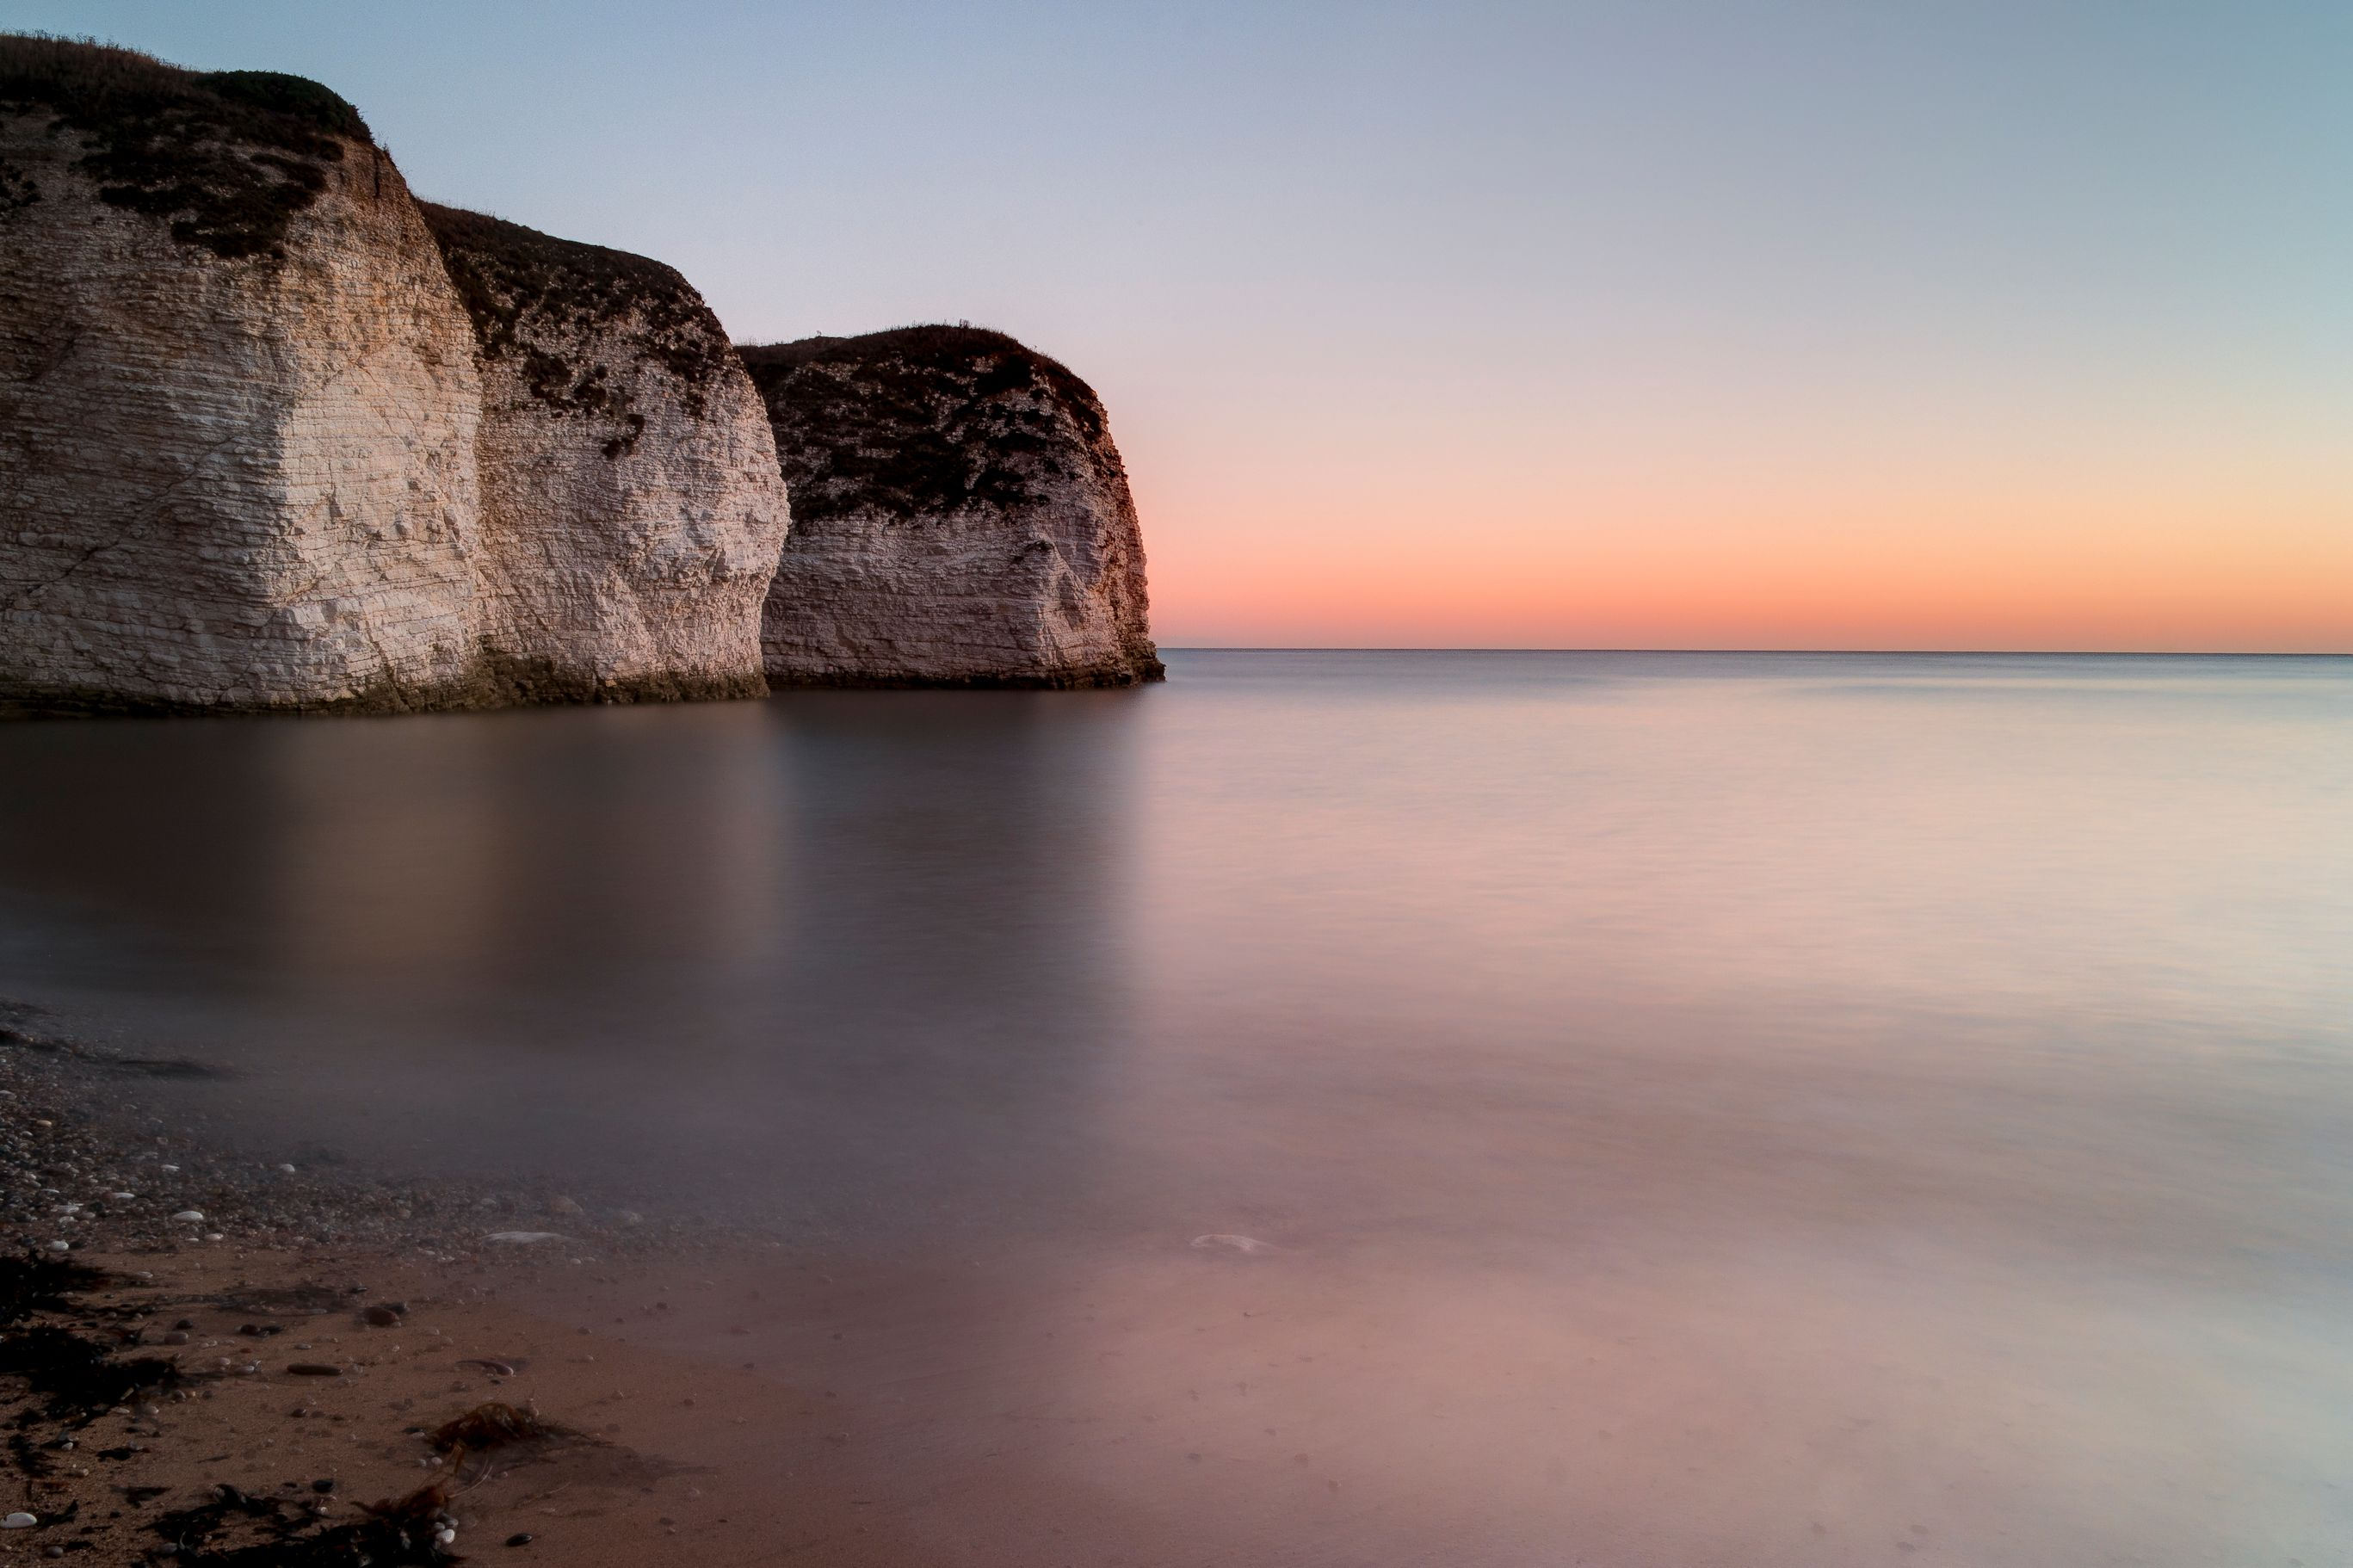 Flamborough Head - 1 hour